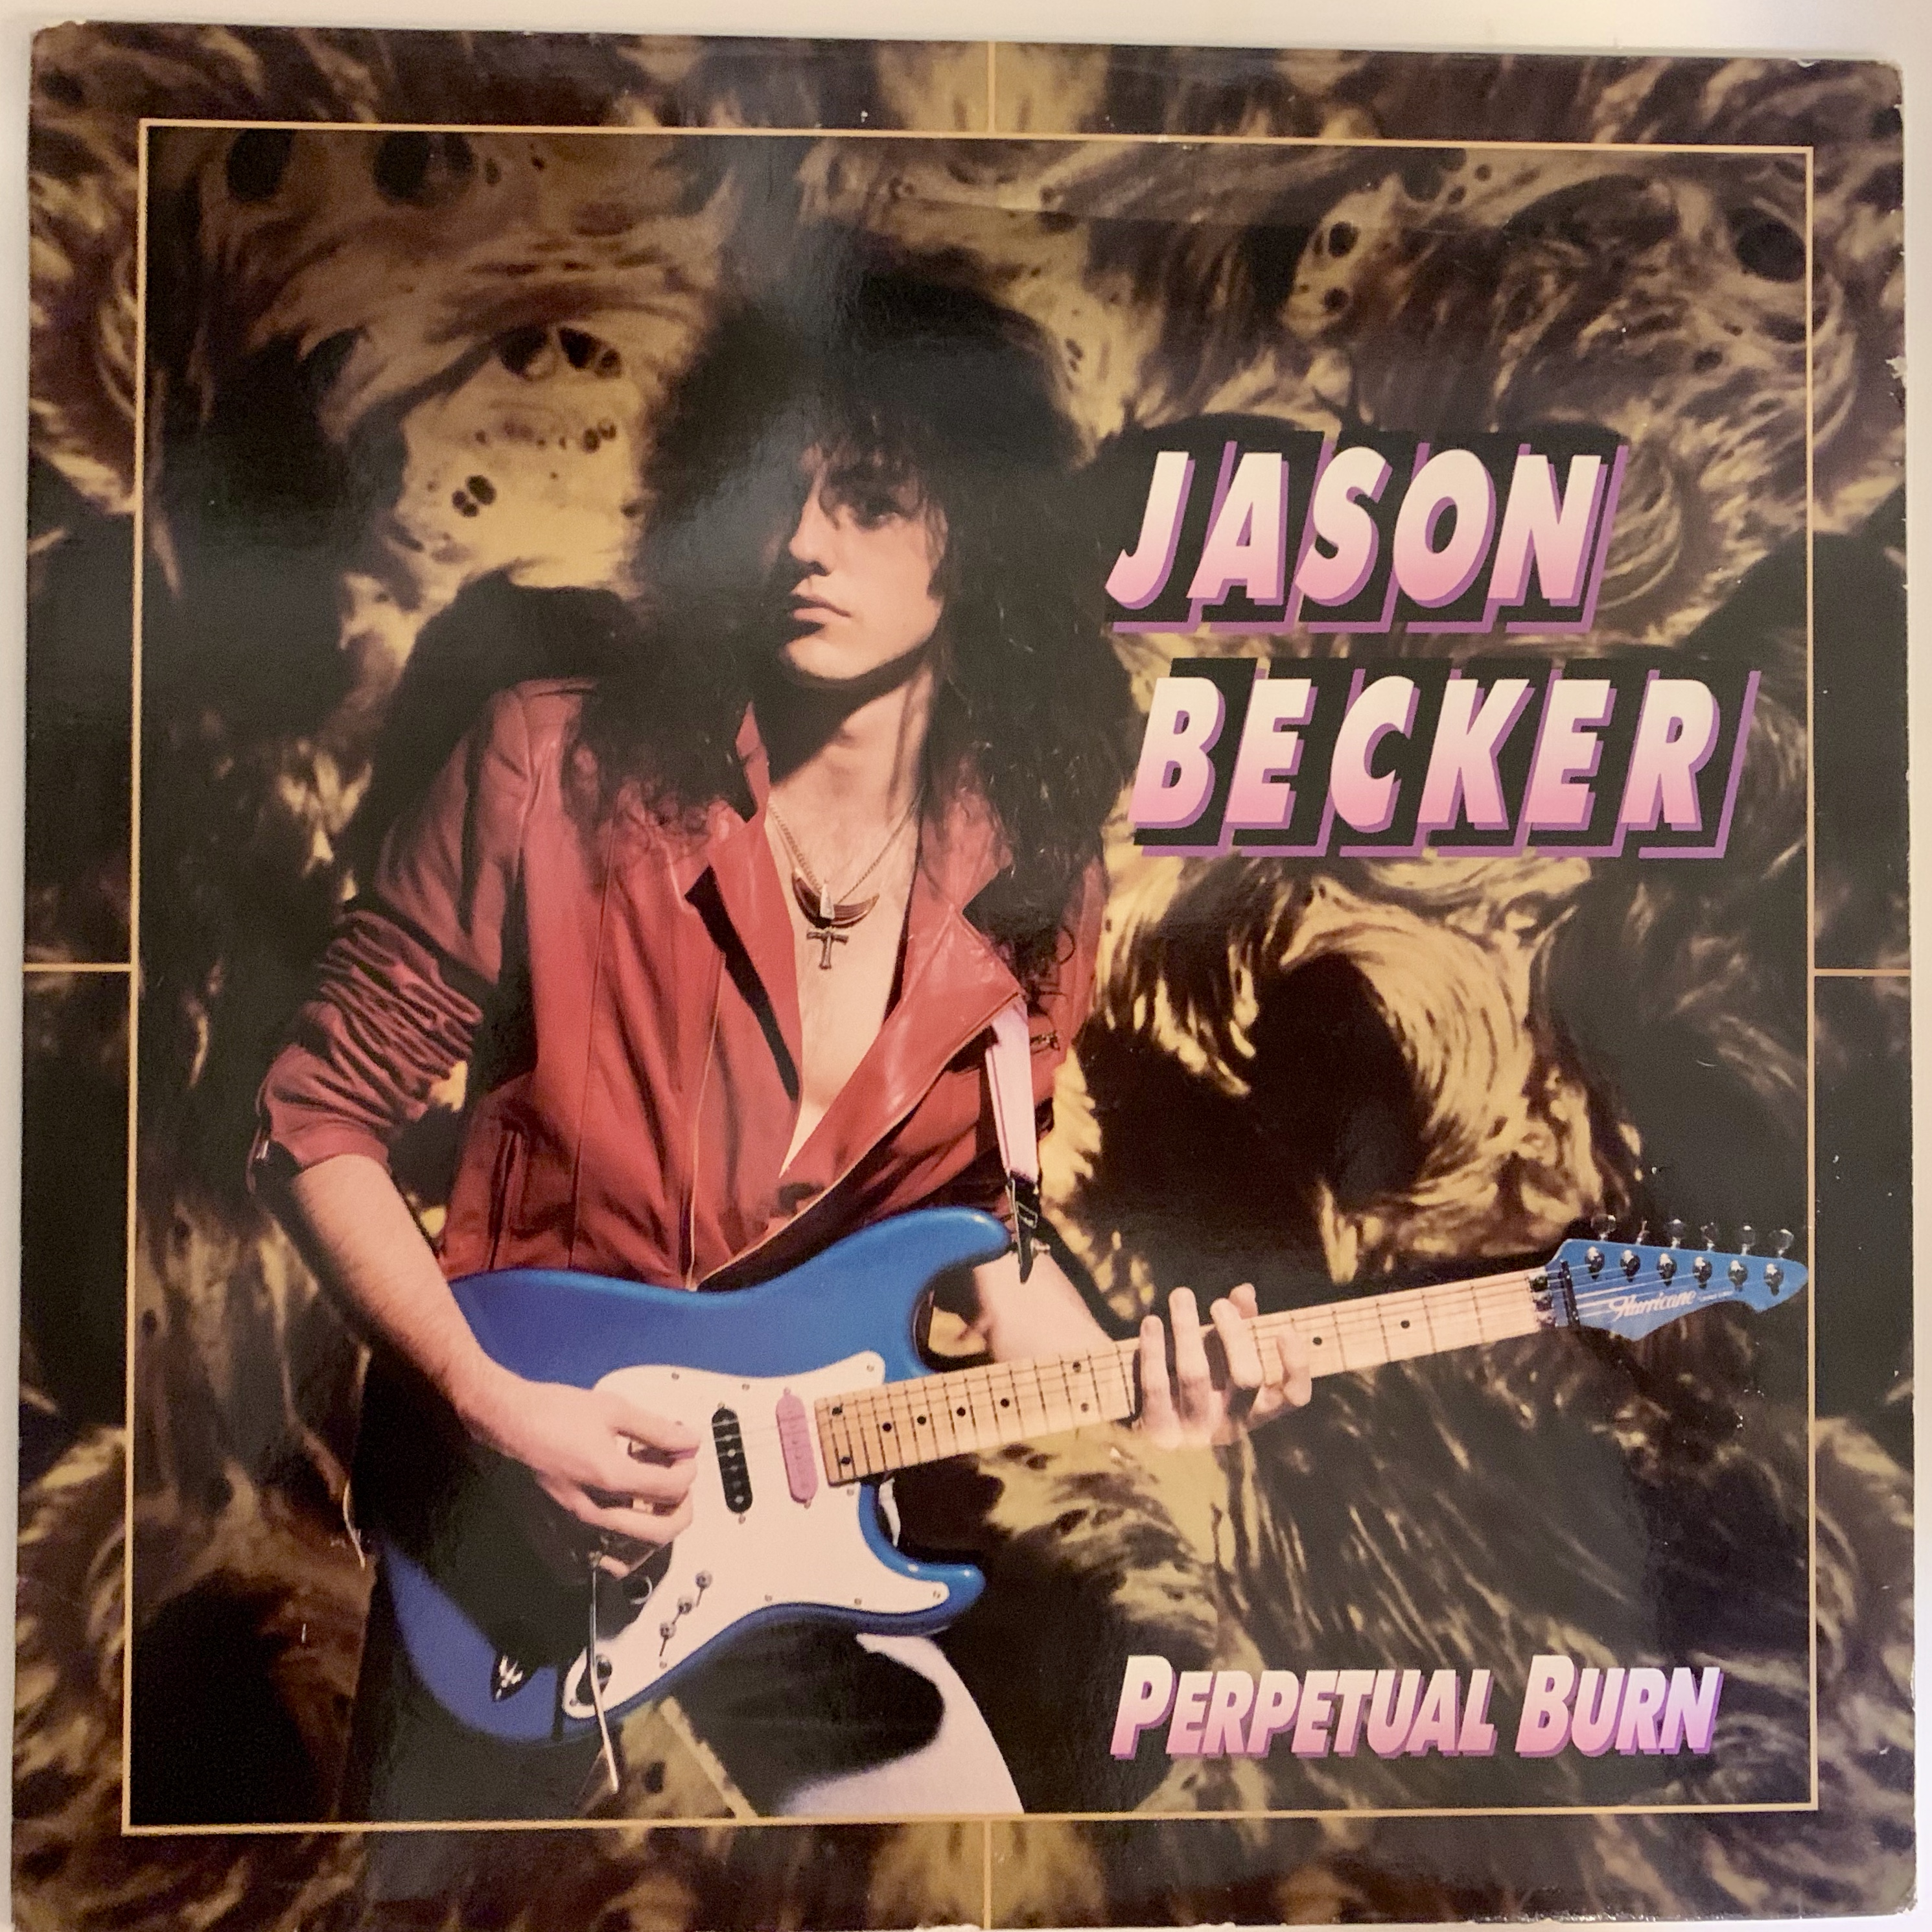 Jason Becker - Perpetual Burn 1988 Vinyl